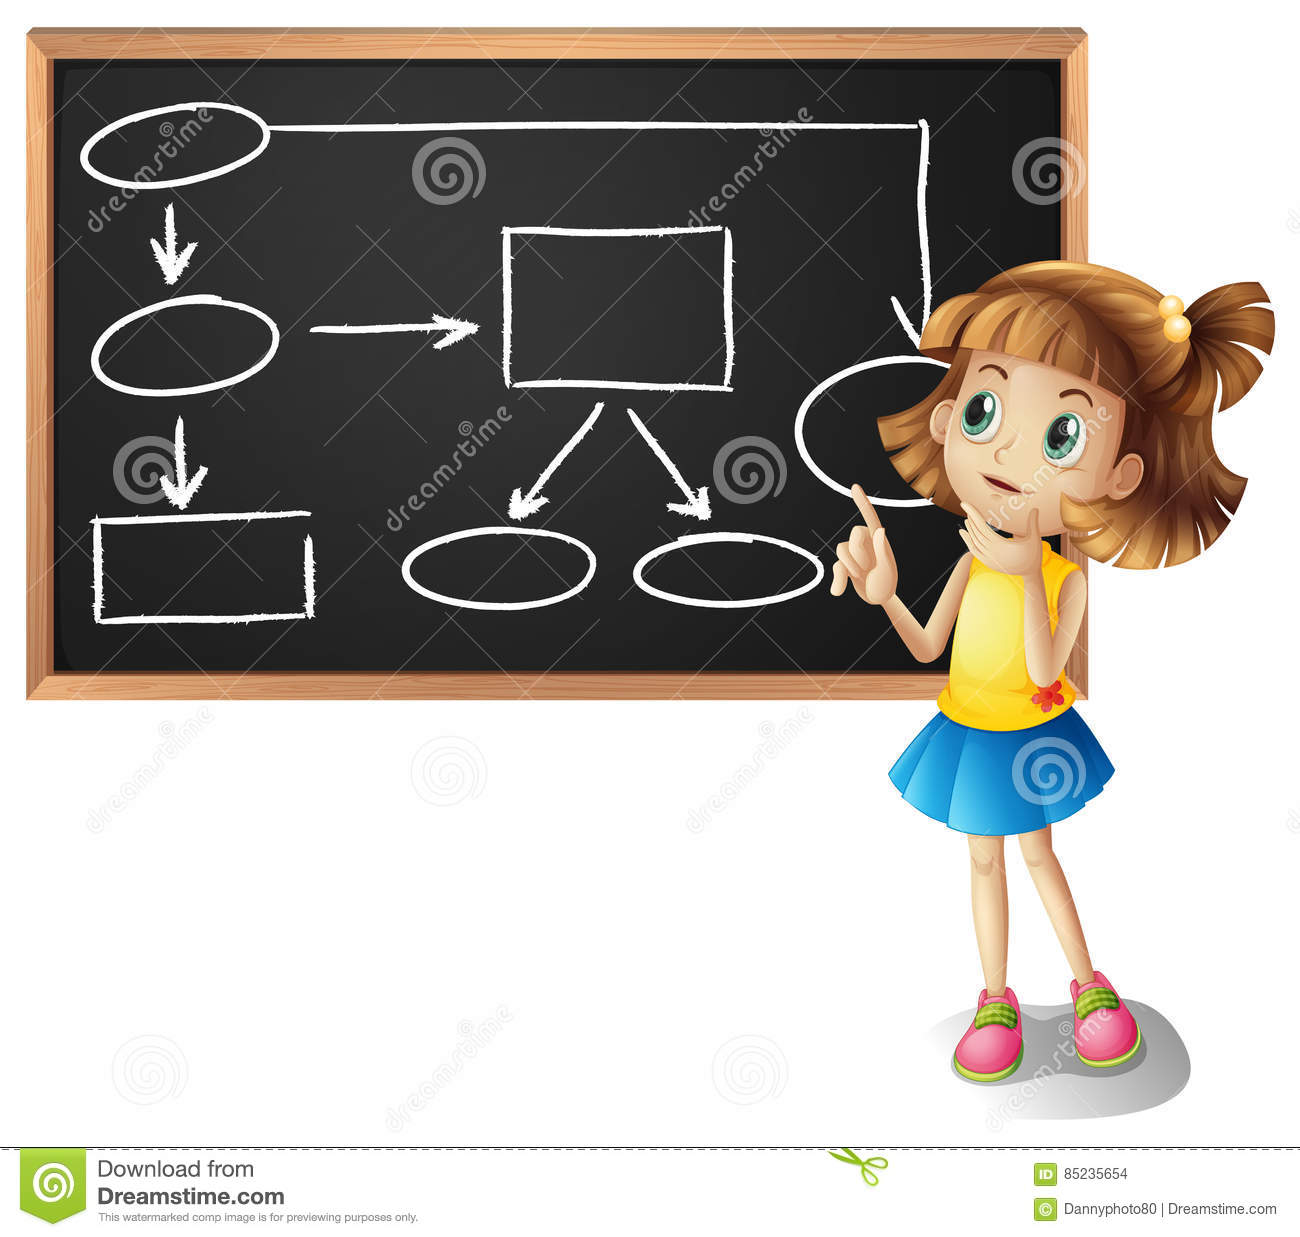 Girl and diagram showing flowchart on board